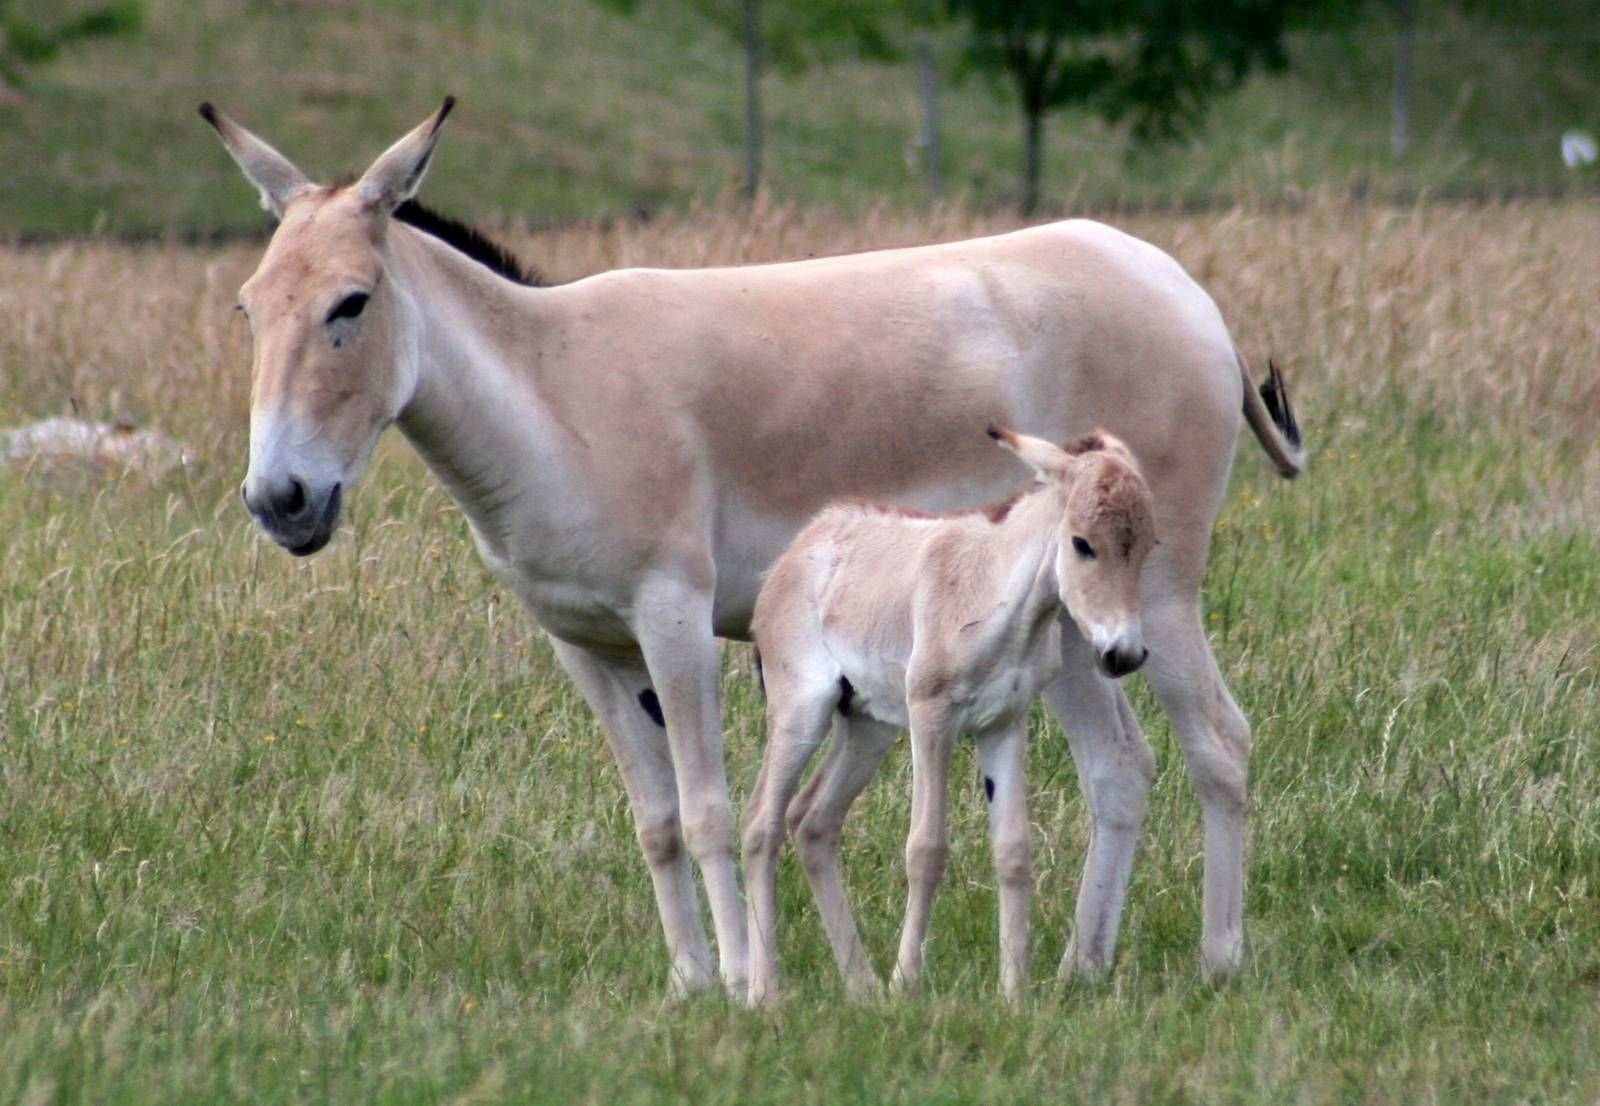 Onager Onager Foal Whipsnade 3rd July 2010 Was Widespread In